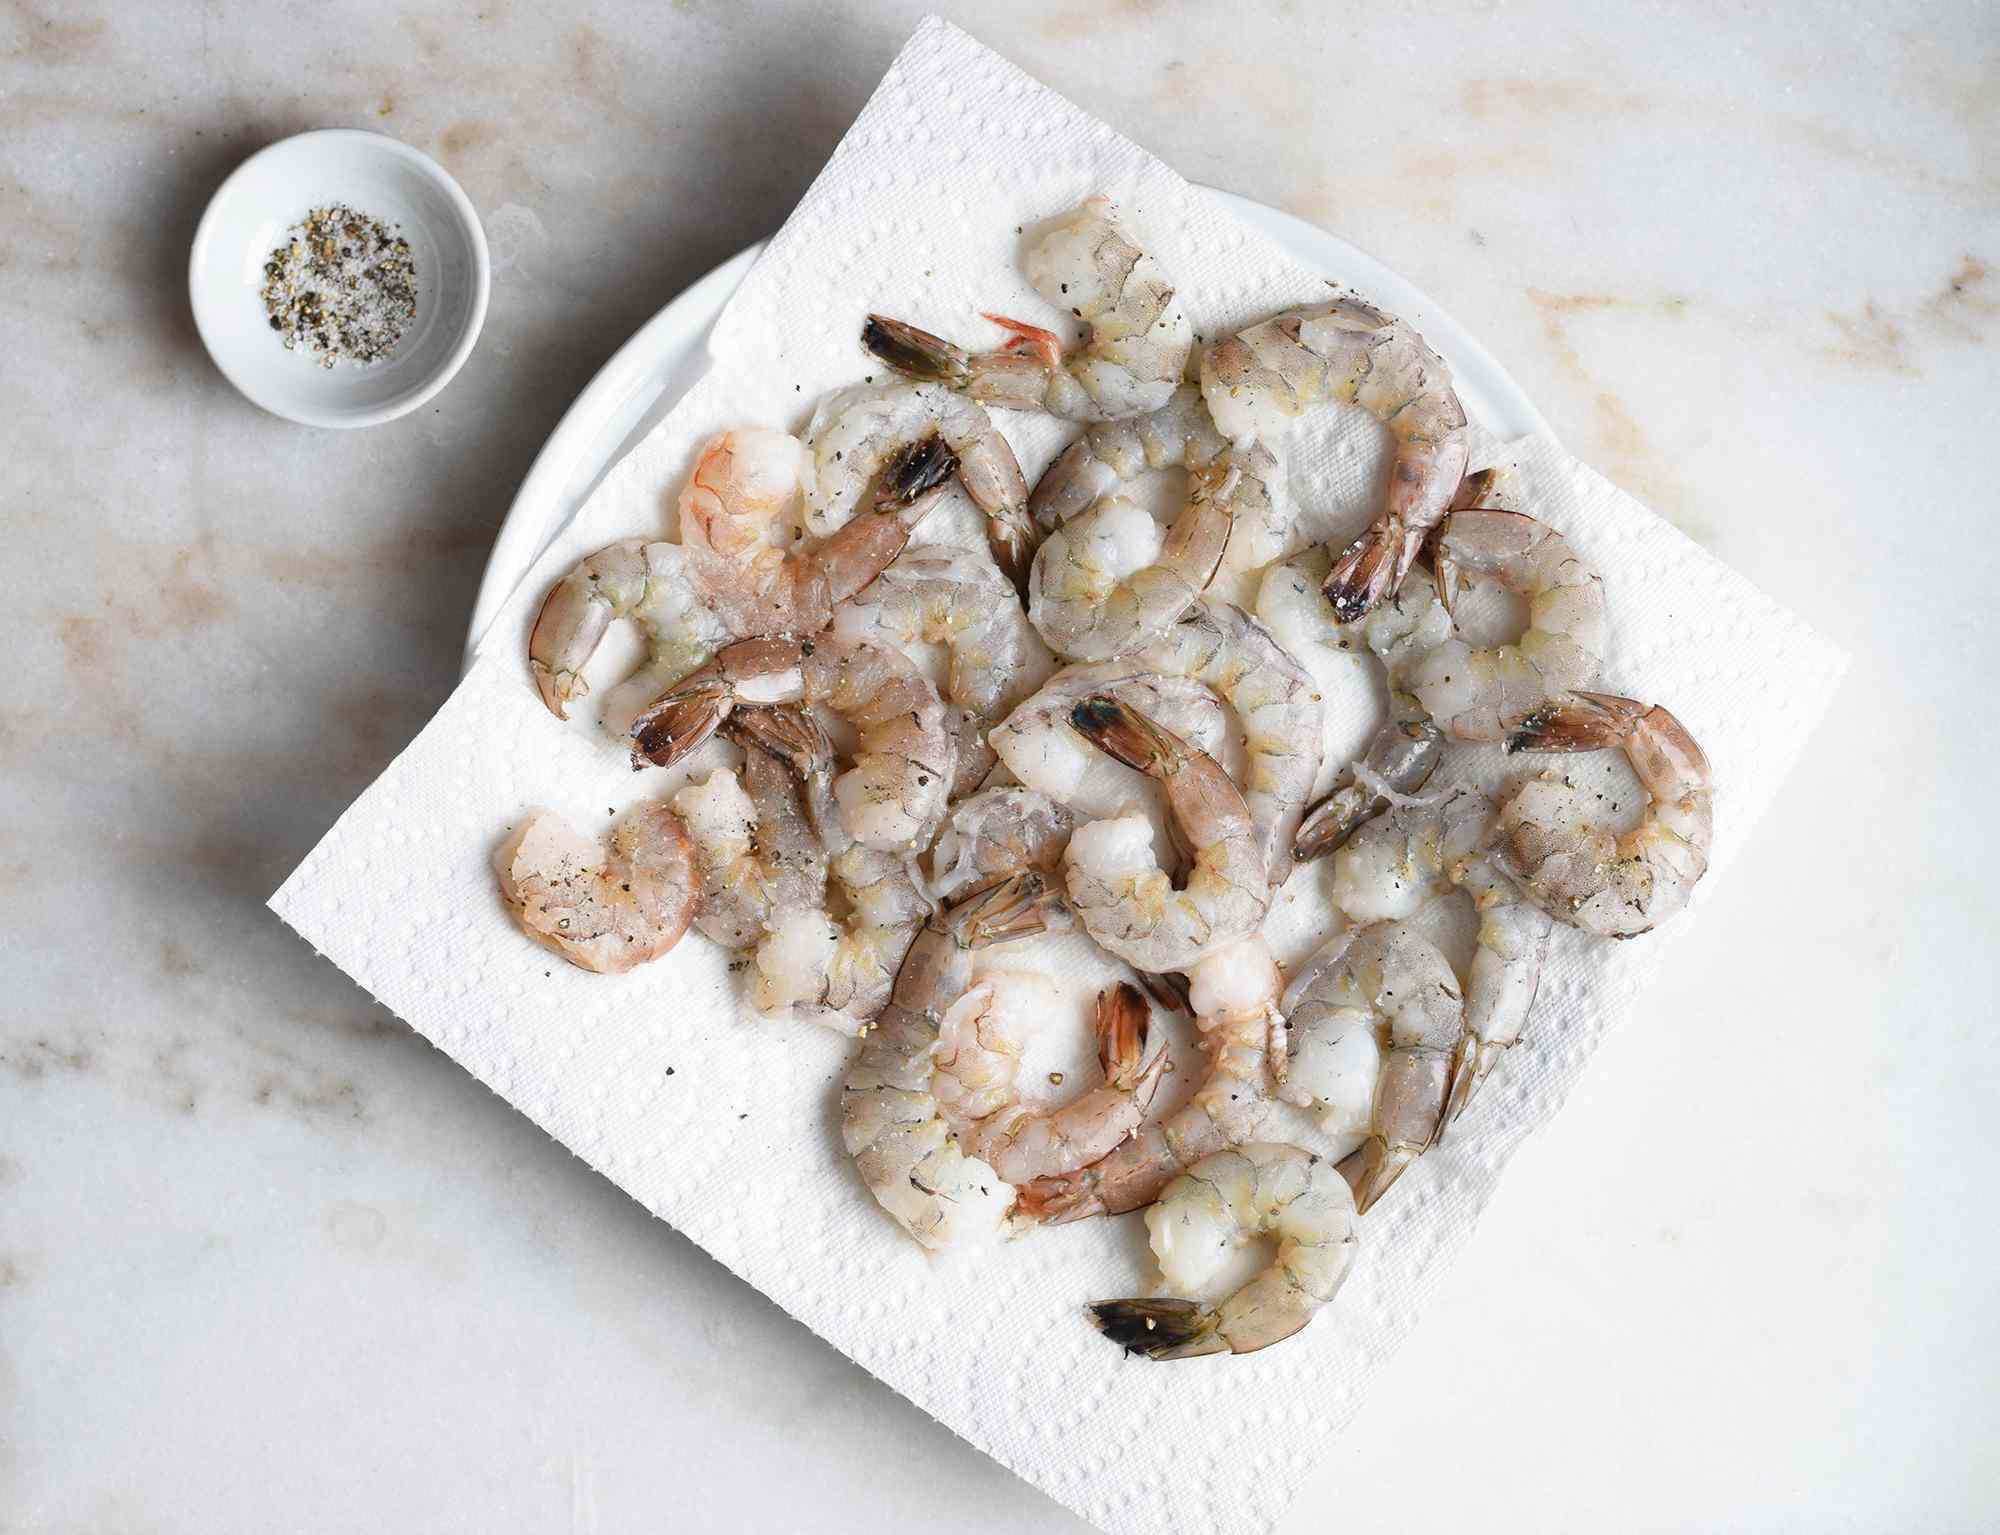 shrimp patted dry and salted and peppered